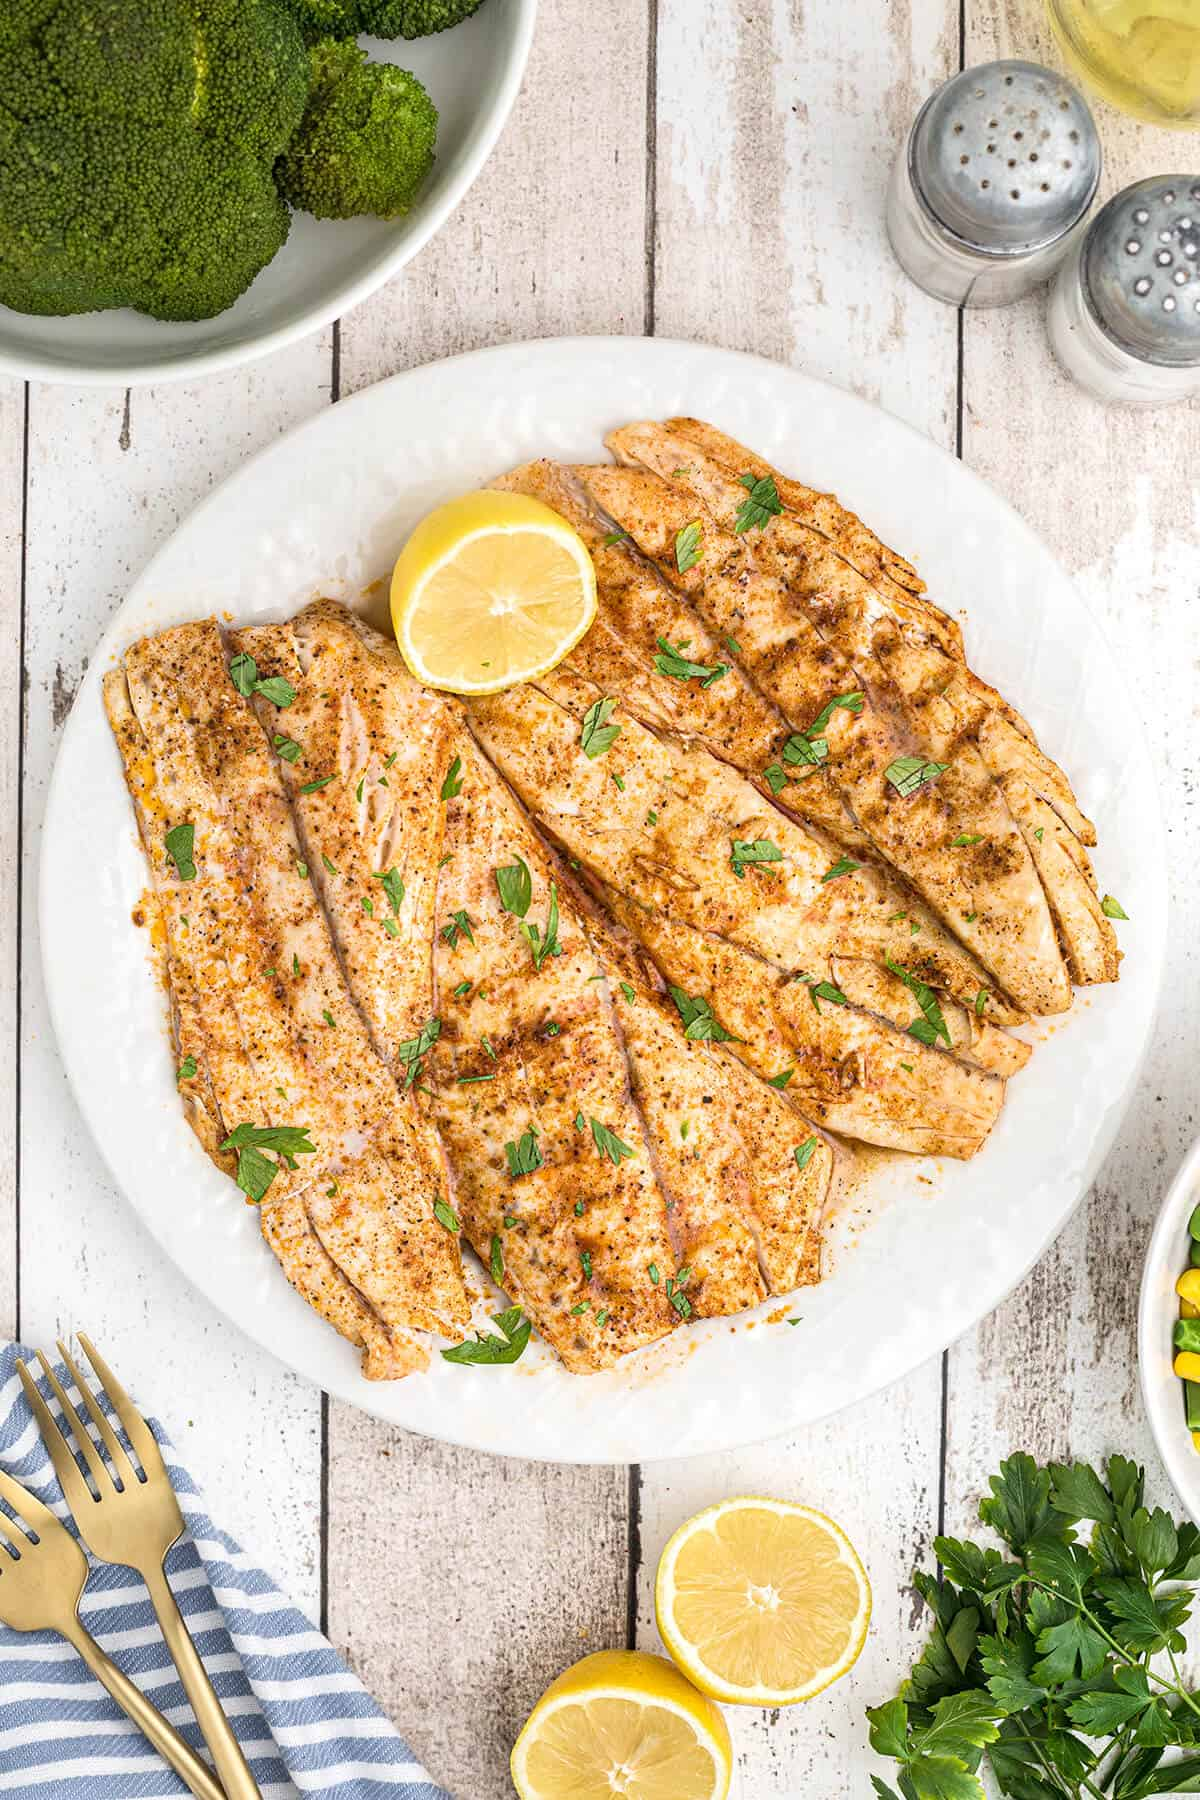 Cooked fish fillets on a plate with a lemon half.